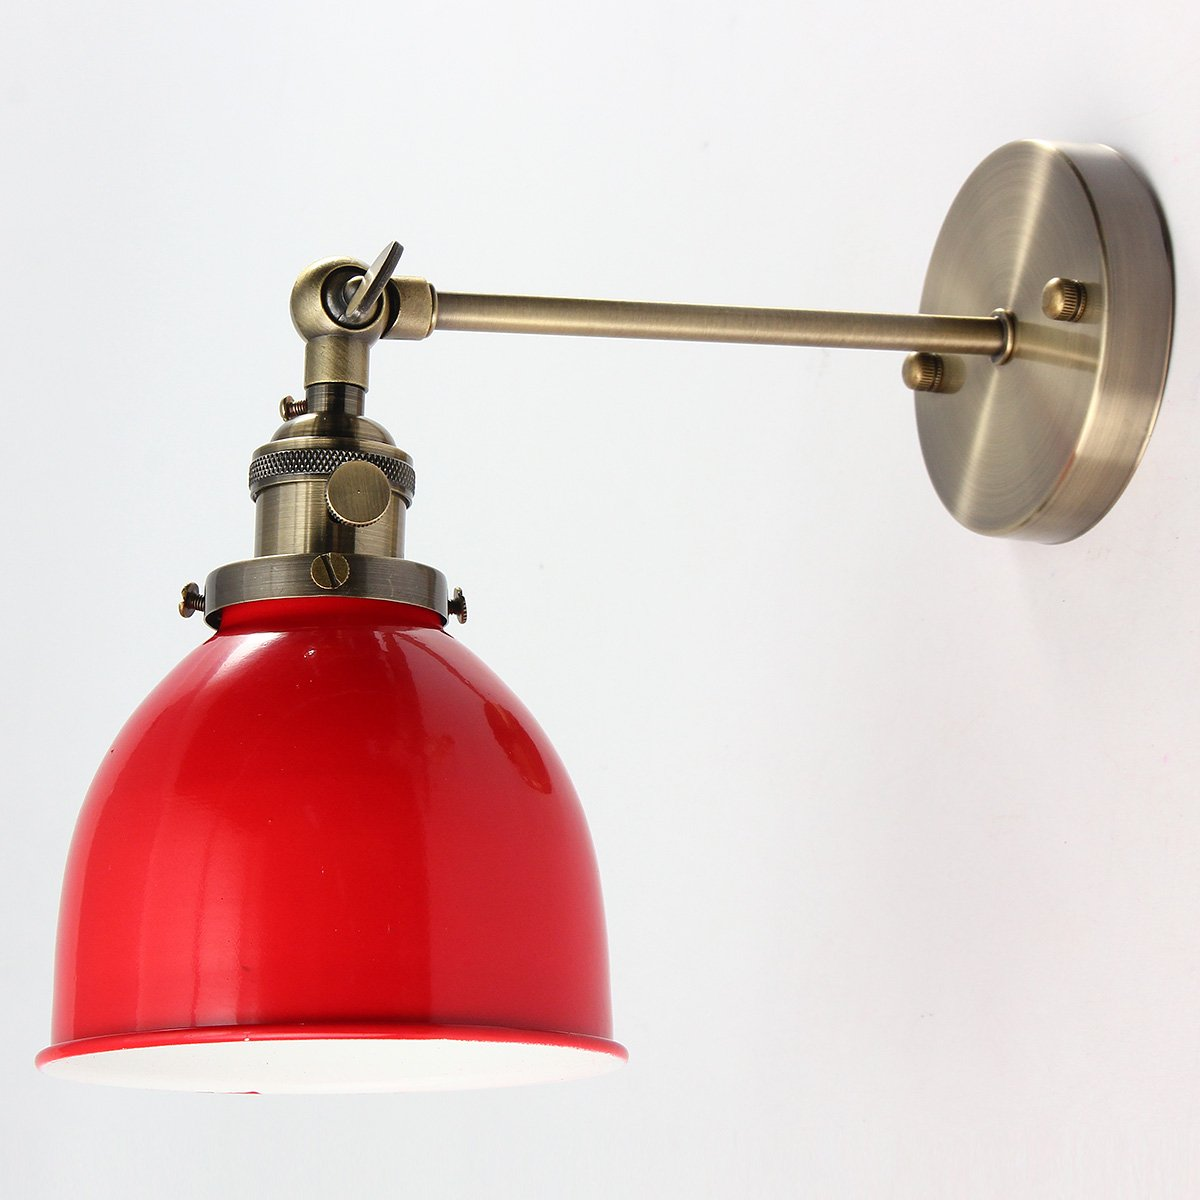 KING DO WAY Kit De E27 Abat-jour Suspension En Métal Industriel Vintage Applique Murale Décoration Maison Chambre Bar Café Baptême Mariage Lampshade (Sans Ampoule) Rouge KING DO WAY Co. LTD